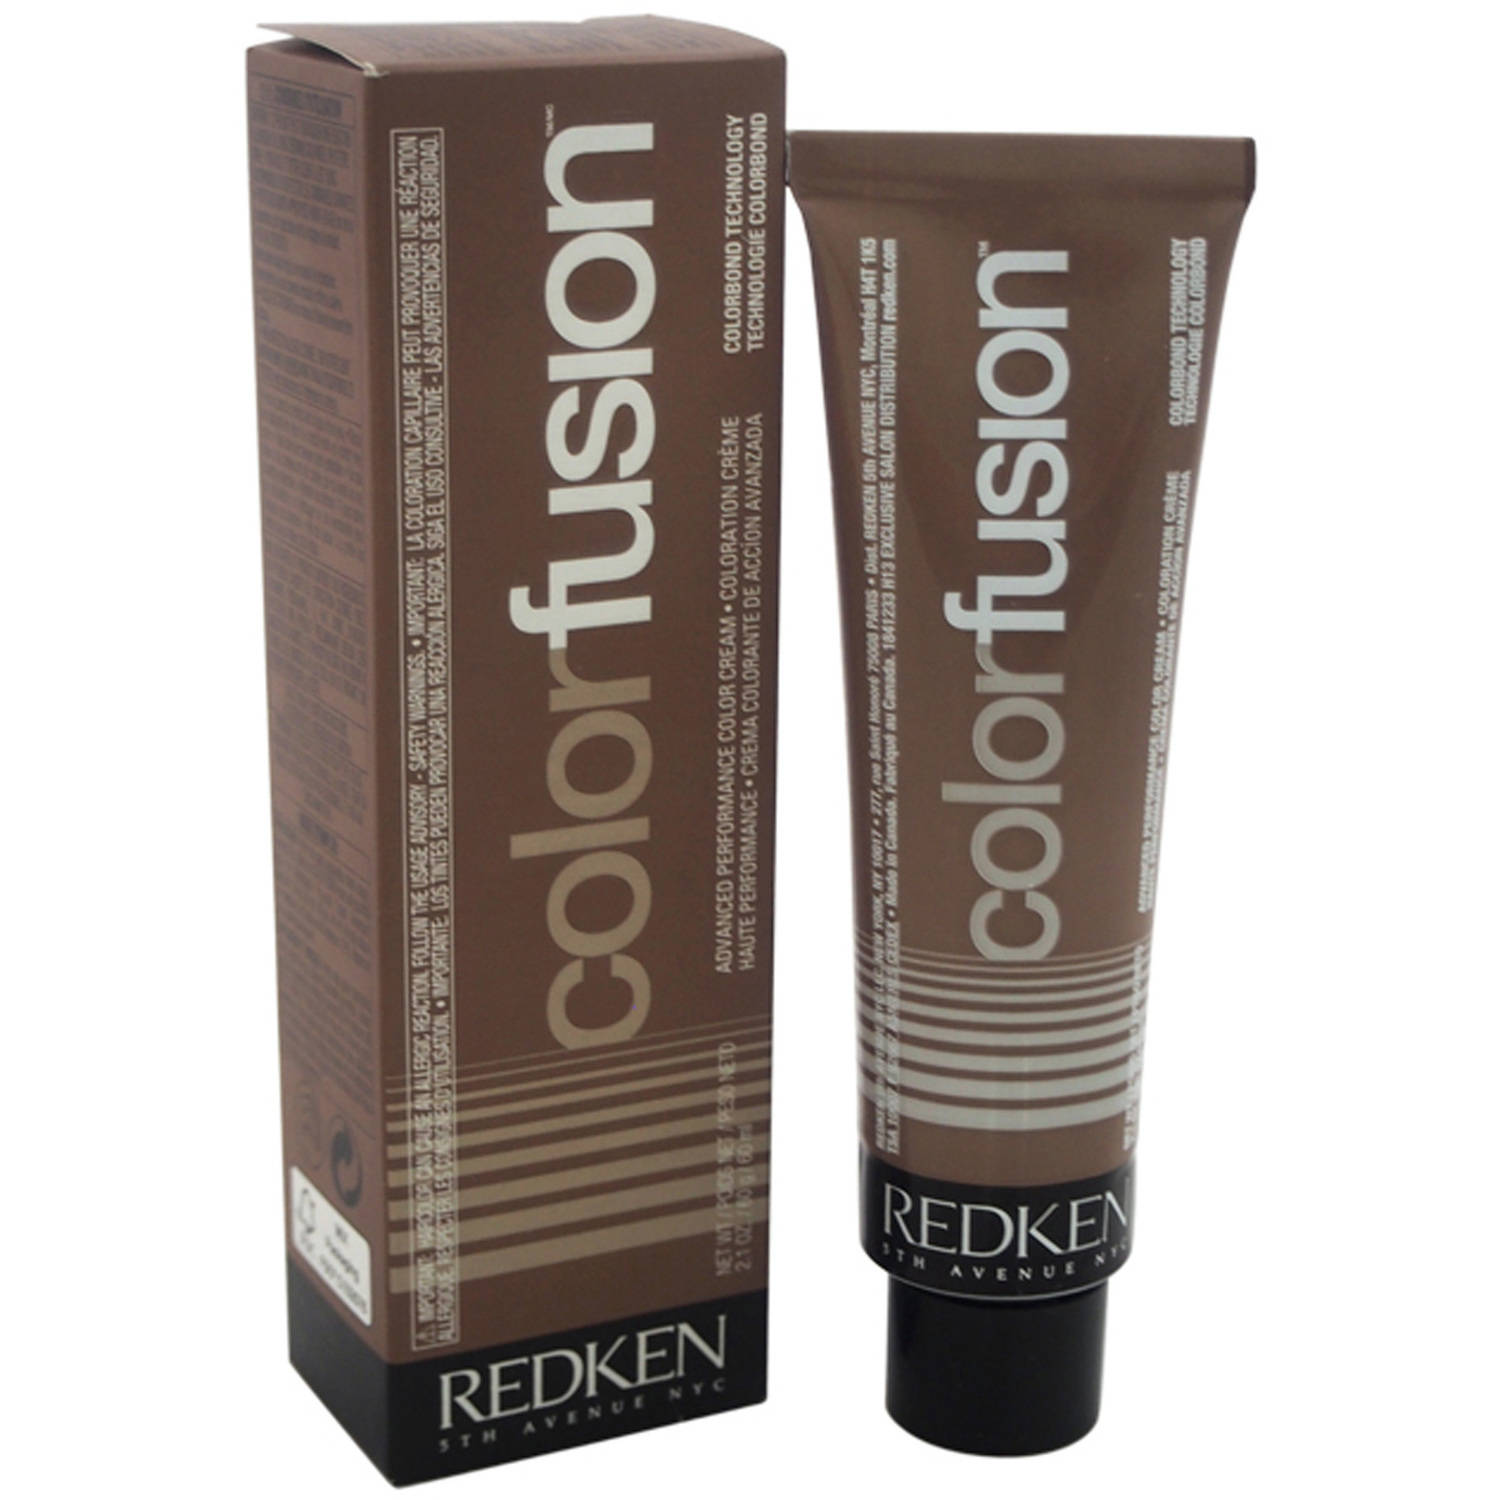 Redken Color Fusion Advanced Performance Color Cream 7Av - Ash/Violet, 2.1  Oz